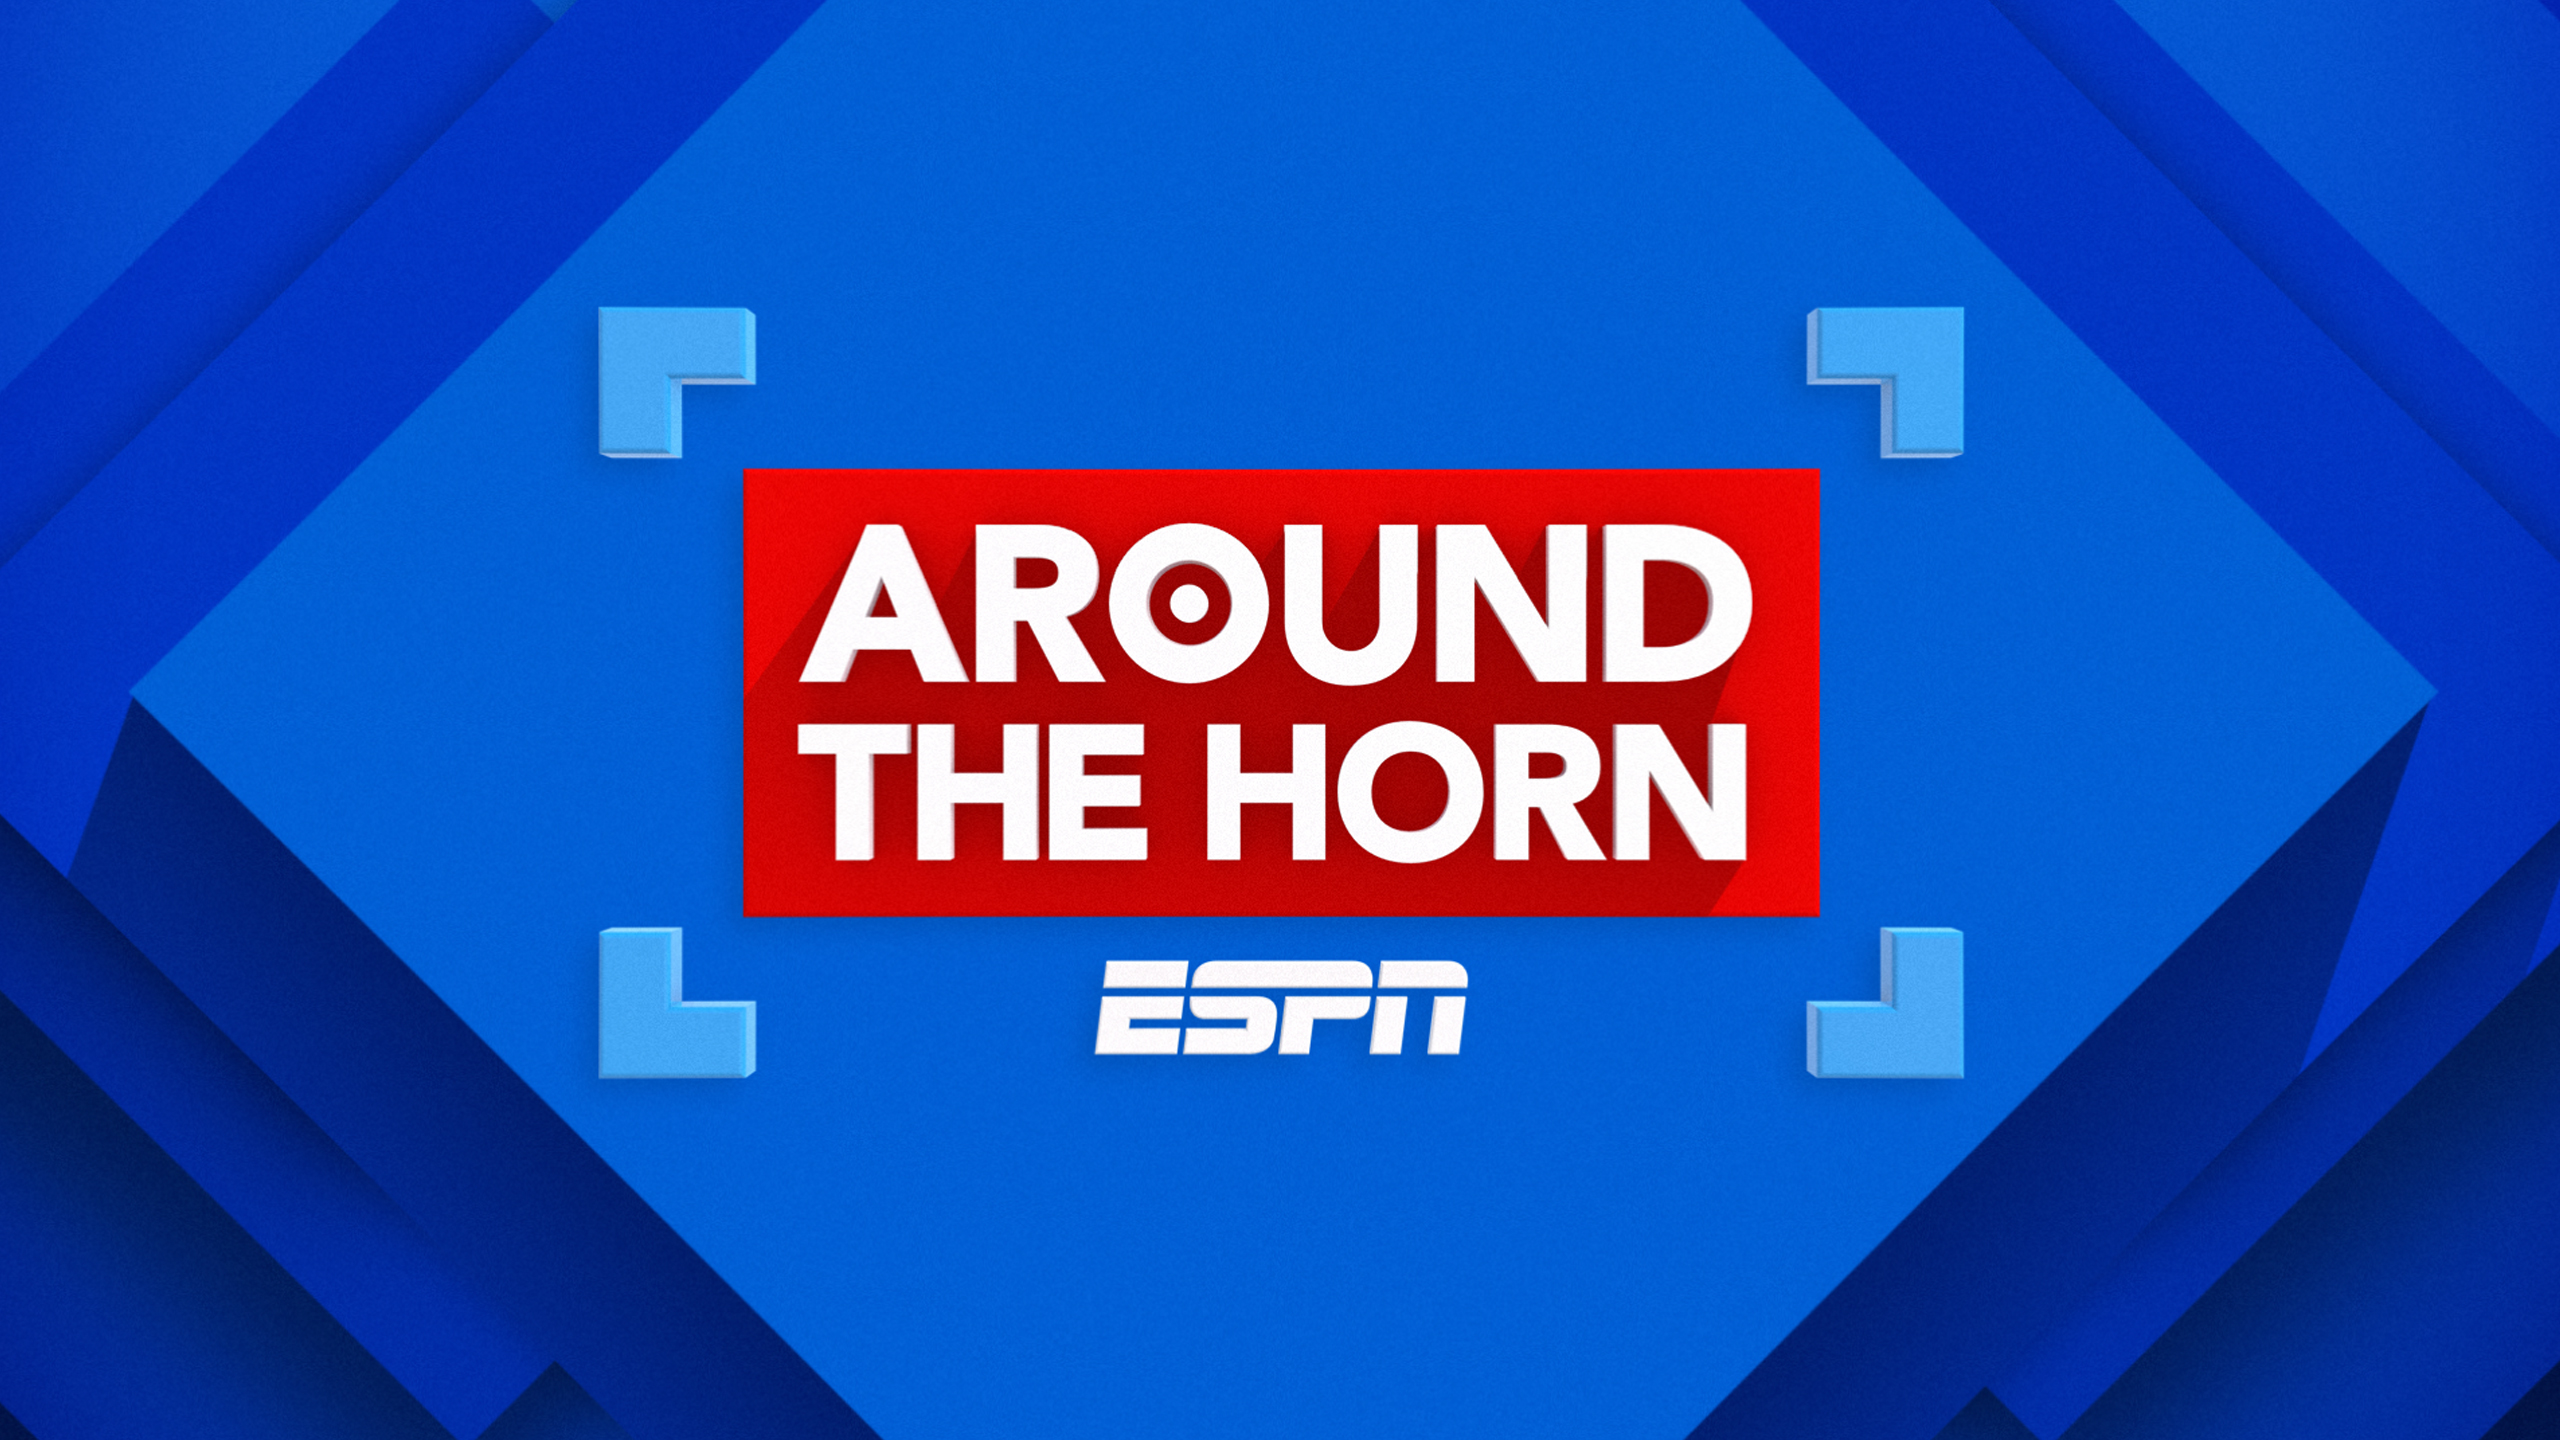 Tue, 10/16 - Around The Horn